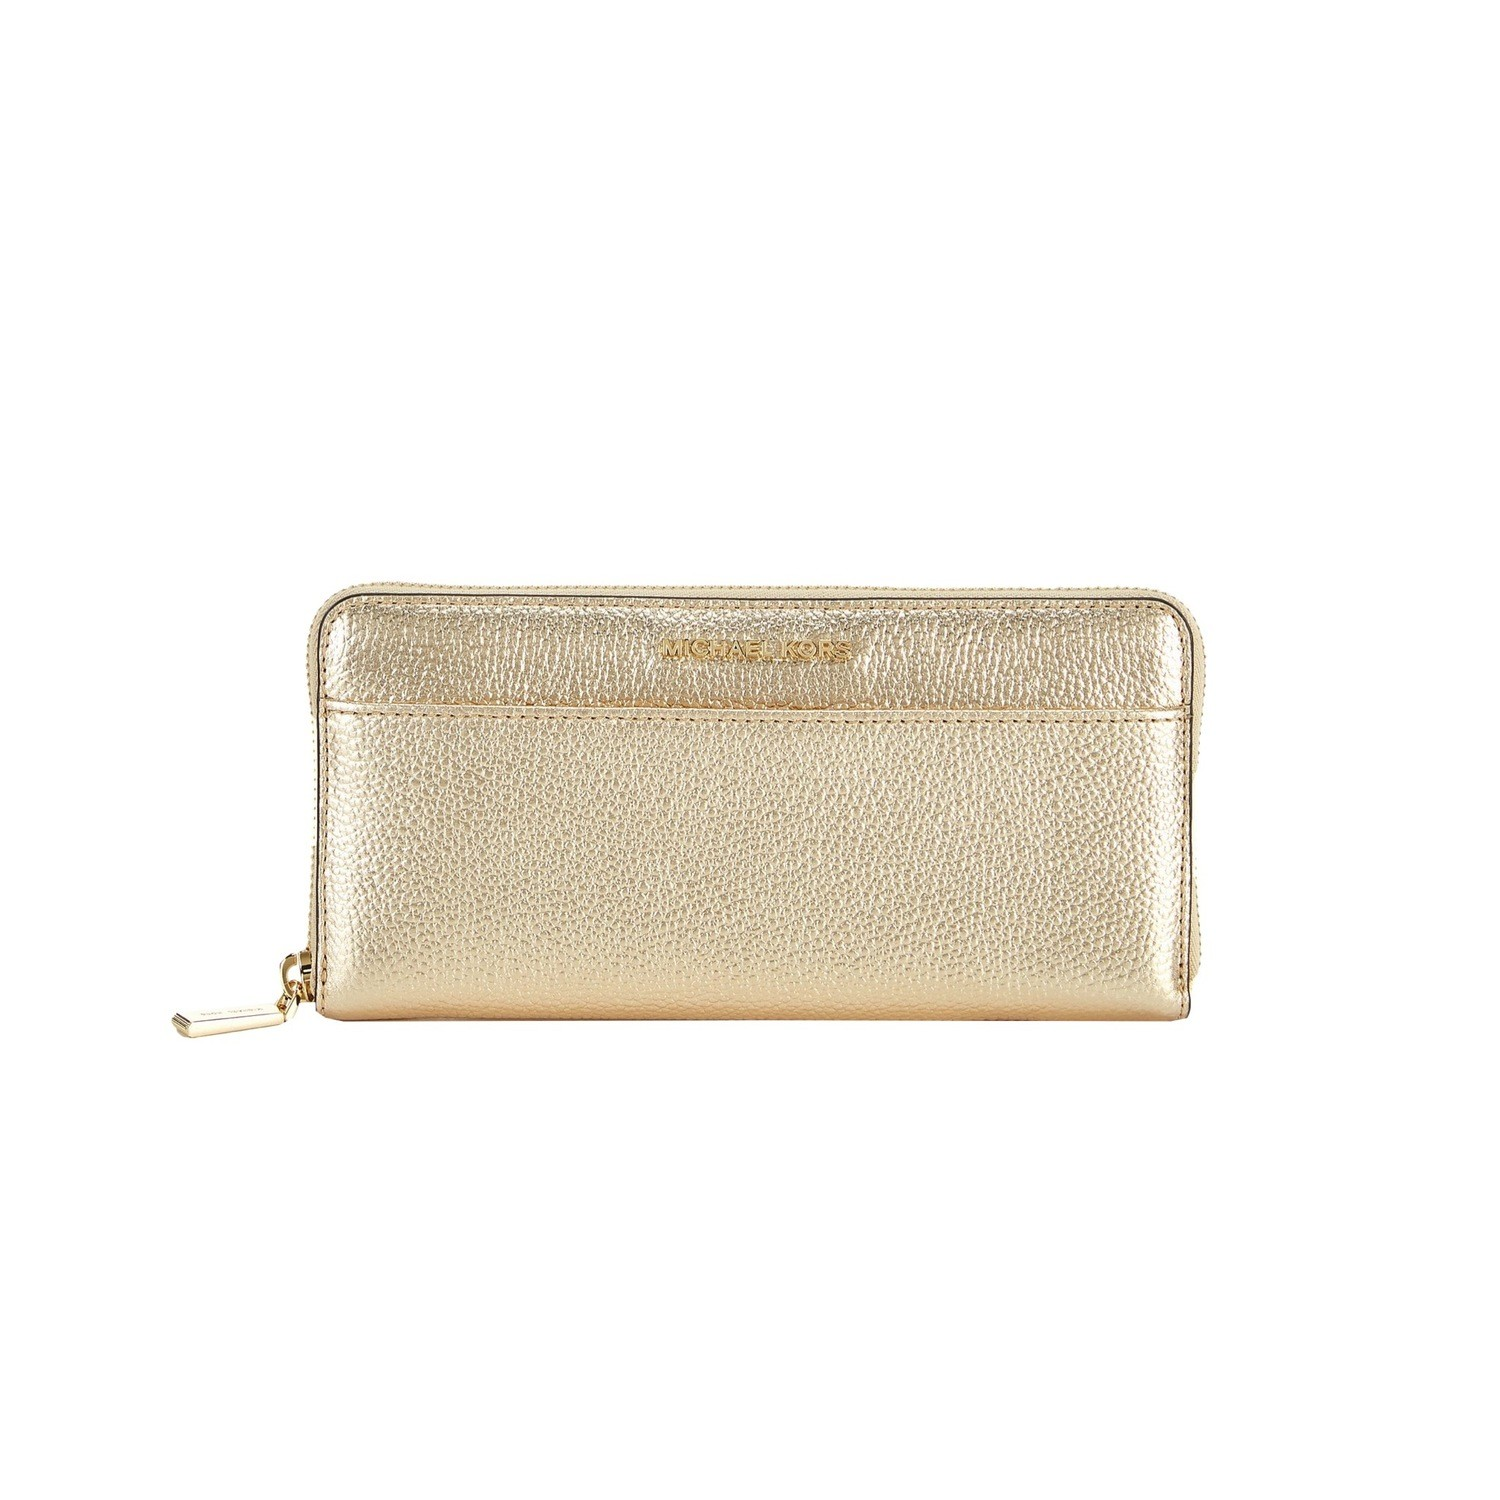 MICHAEL KORS - Mercer Pocket ZA Continental - Pale Gold